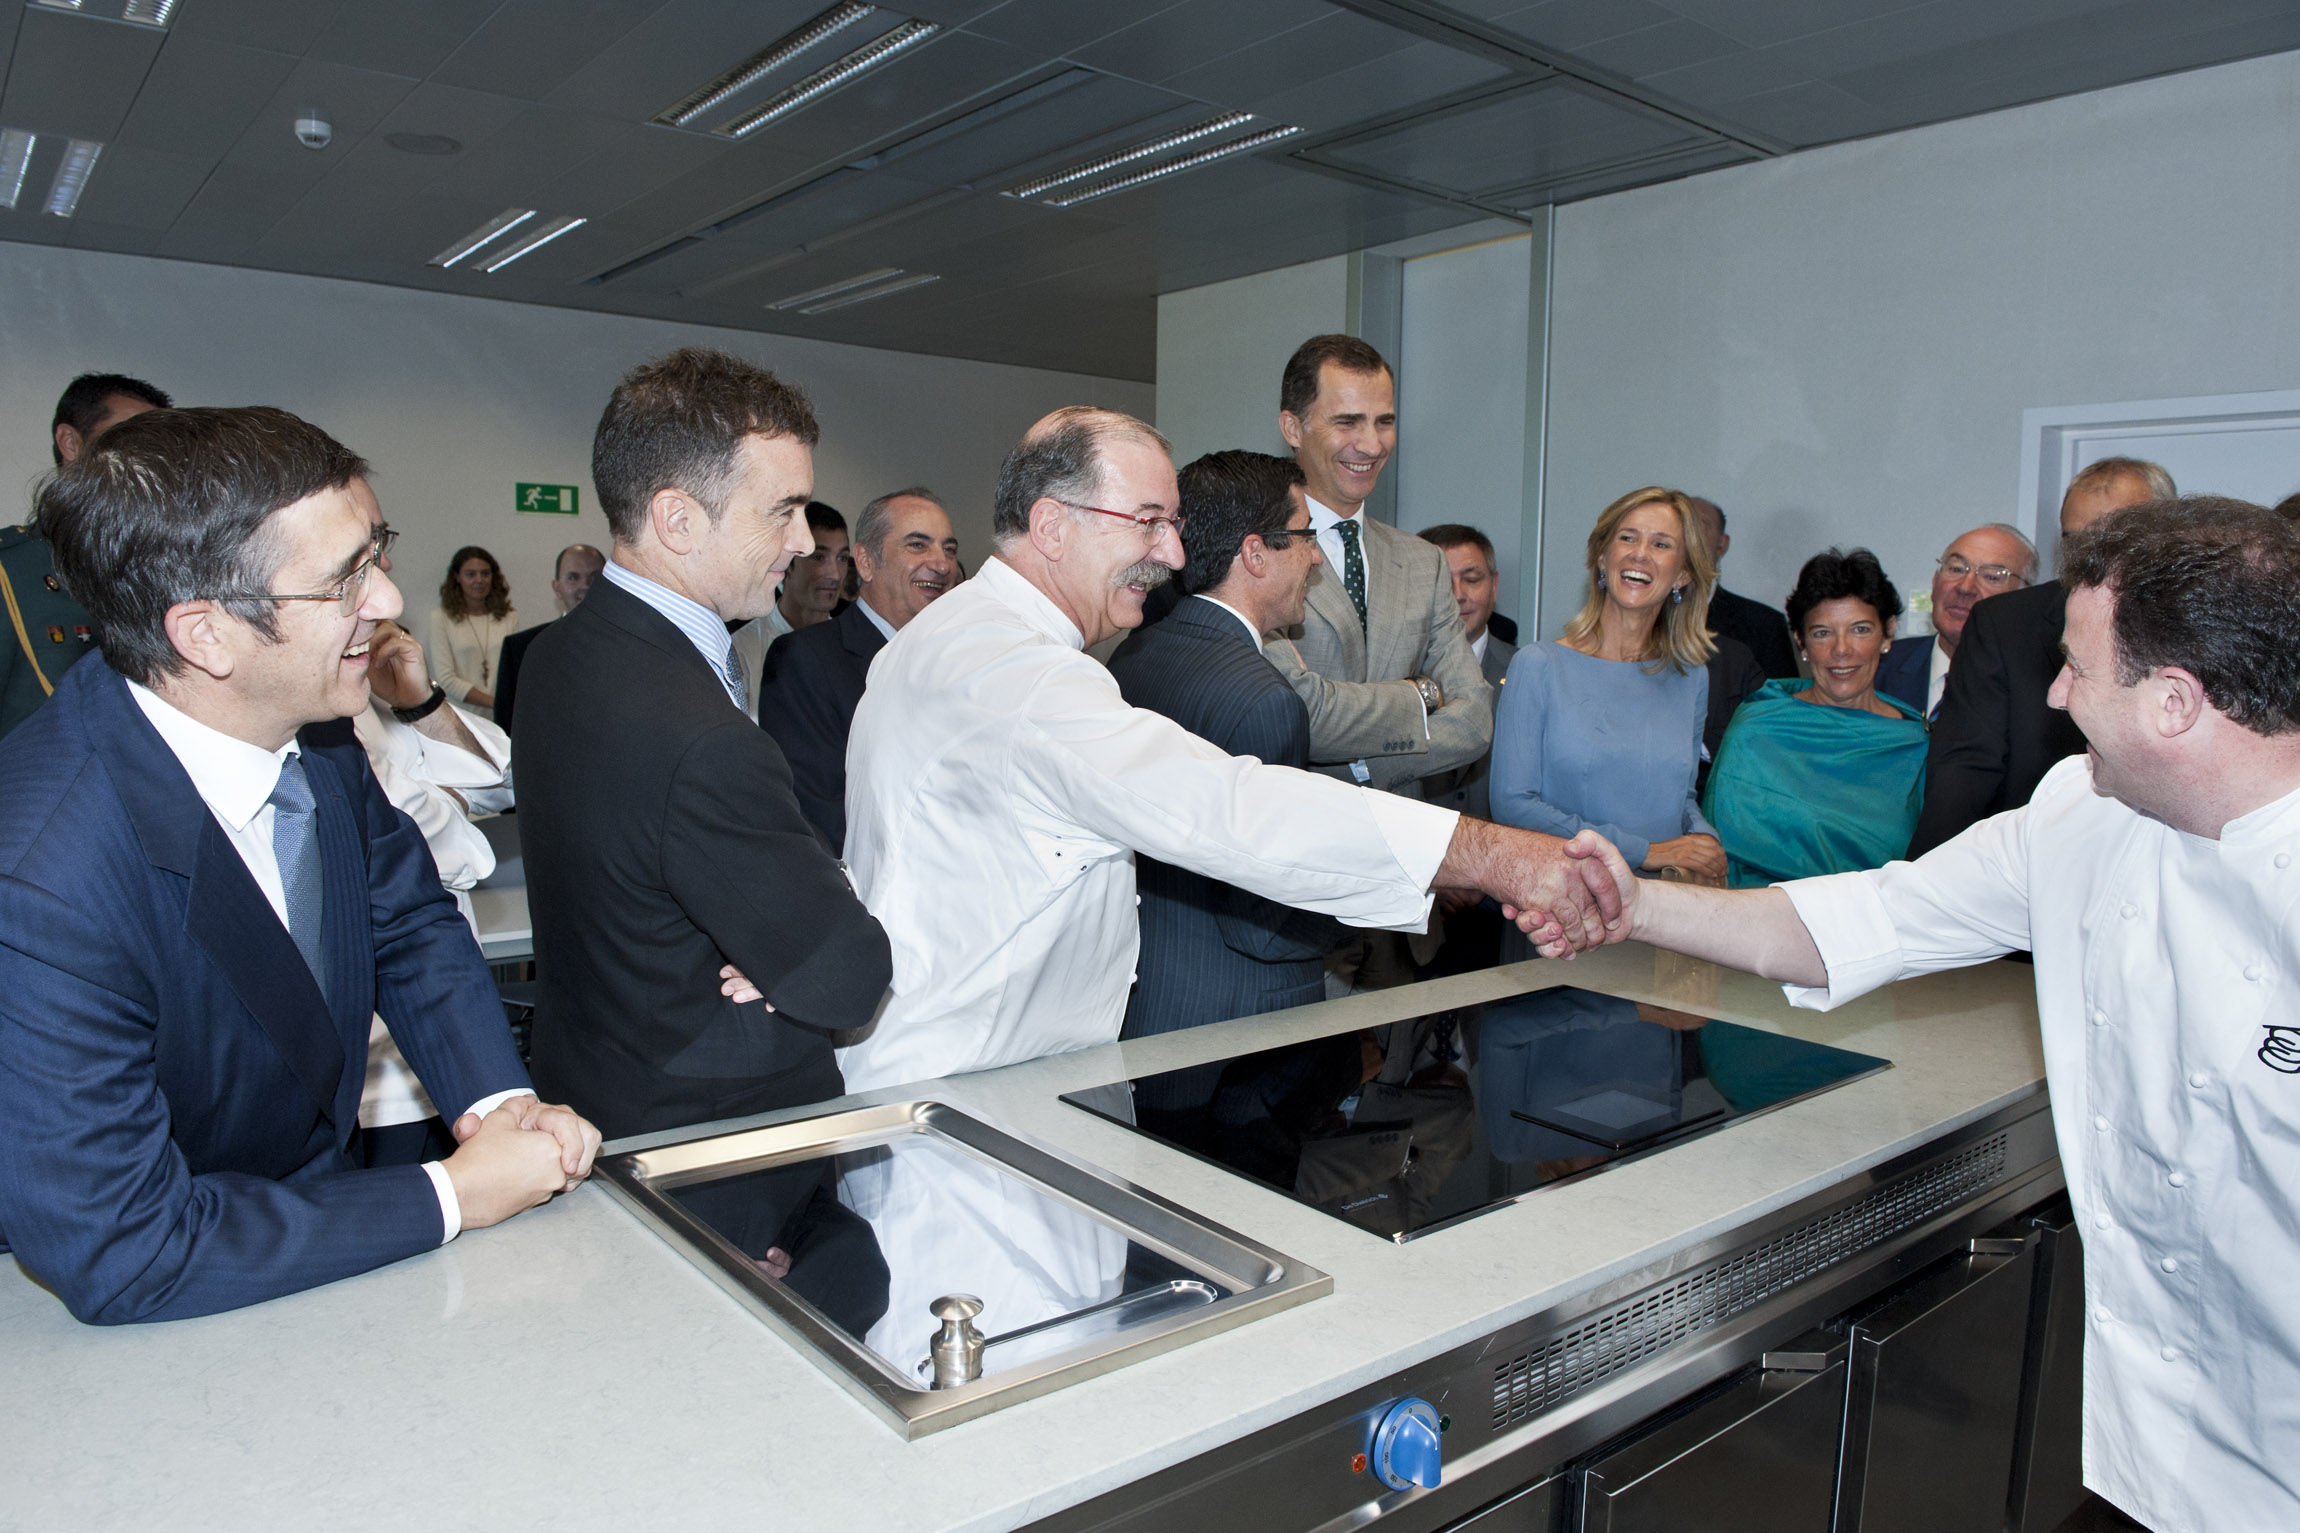 The Lehendakari and the Prince and Princess inaugurate the Basque Culinary Center